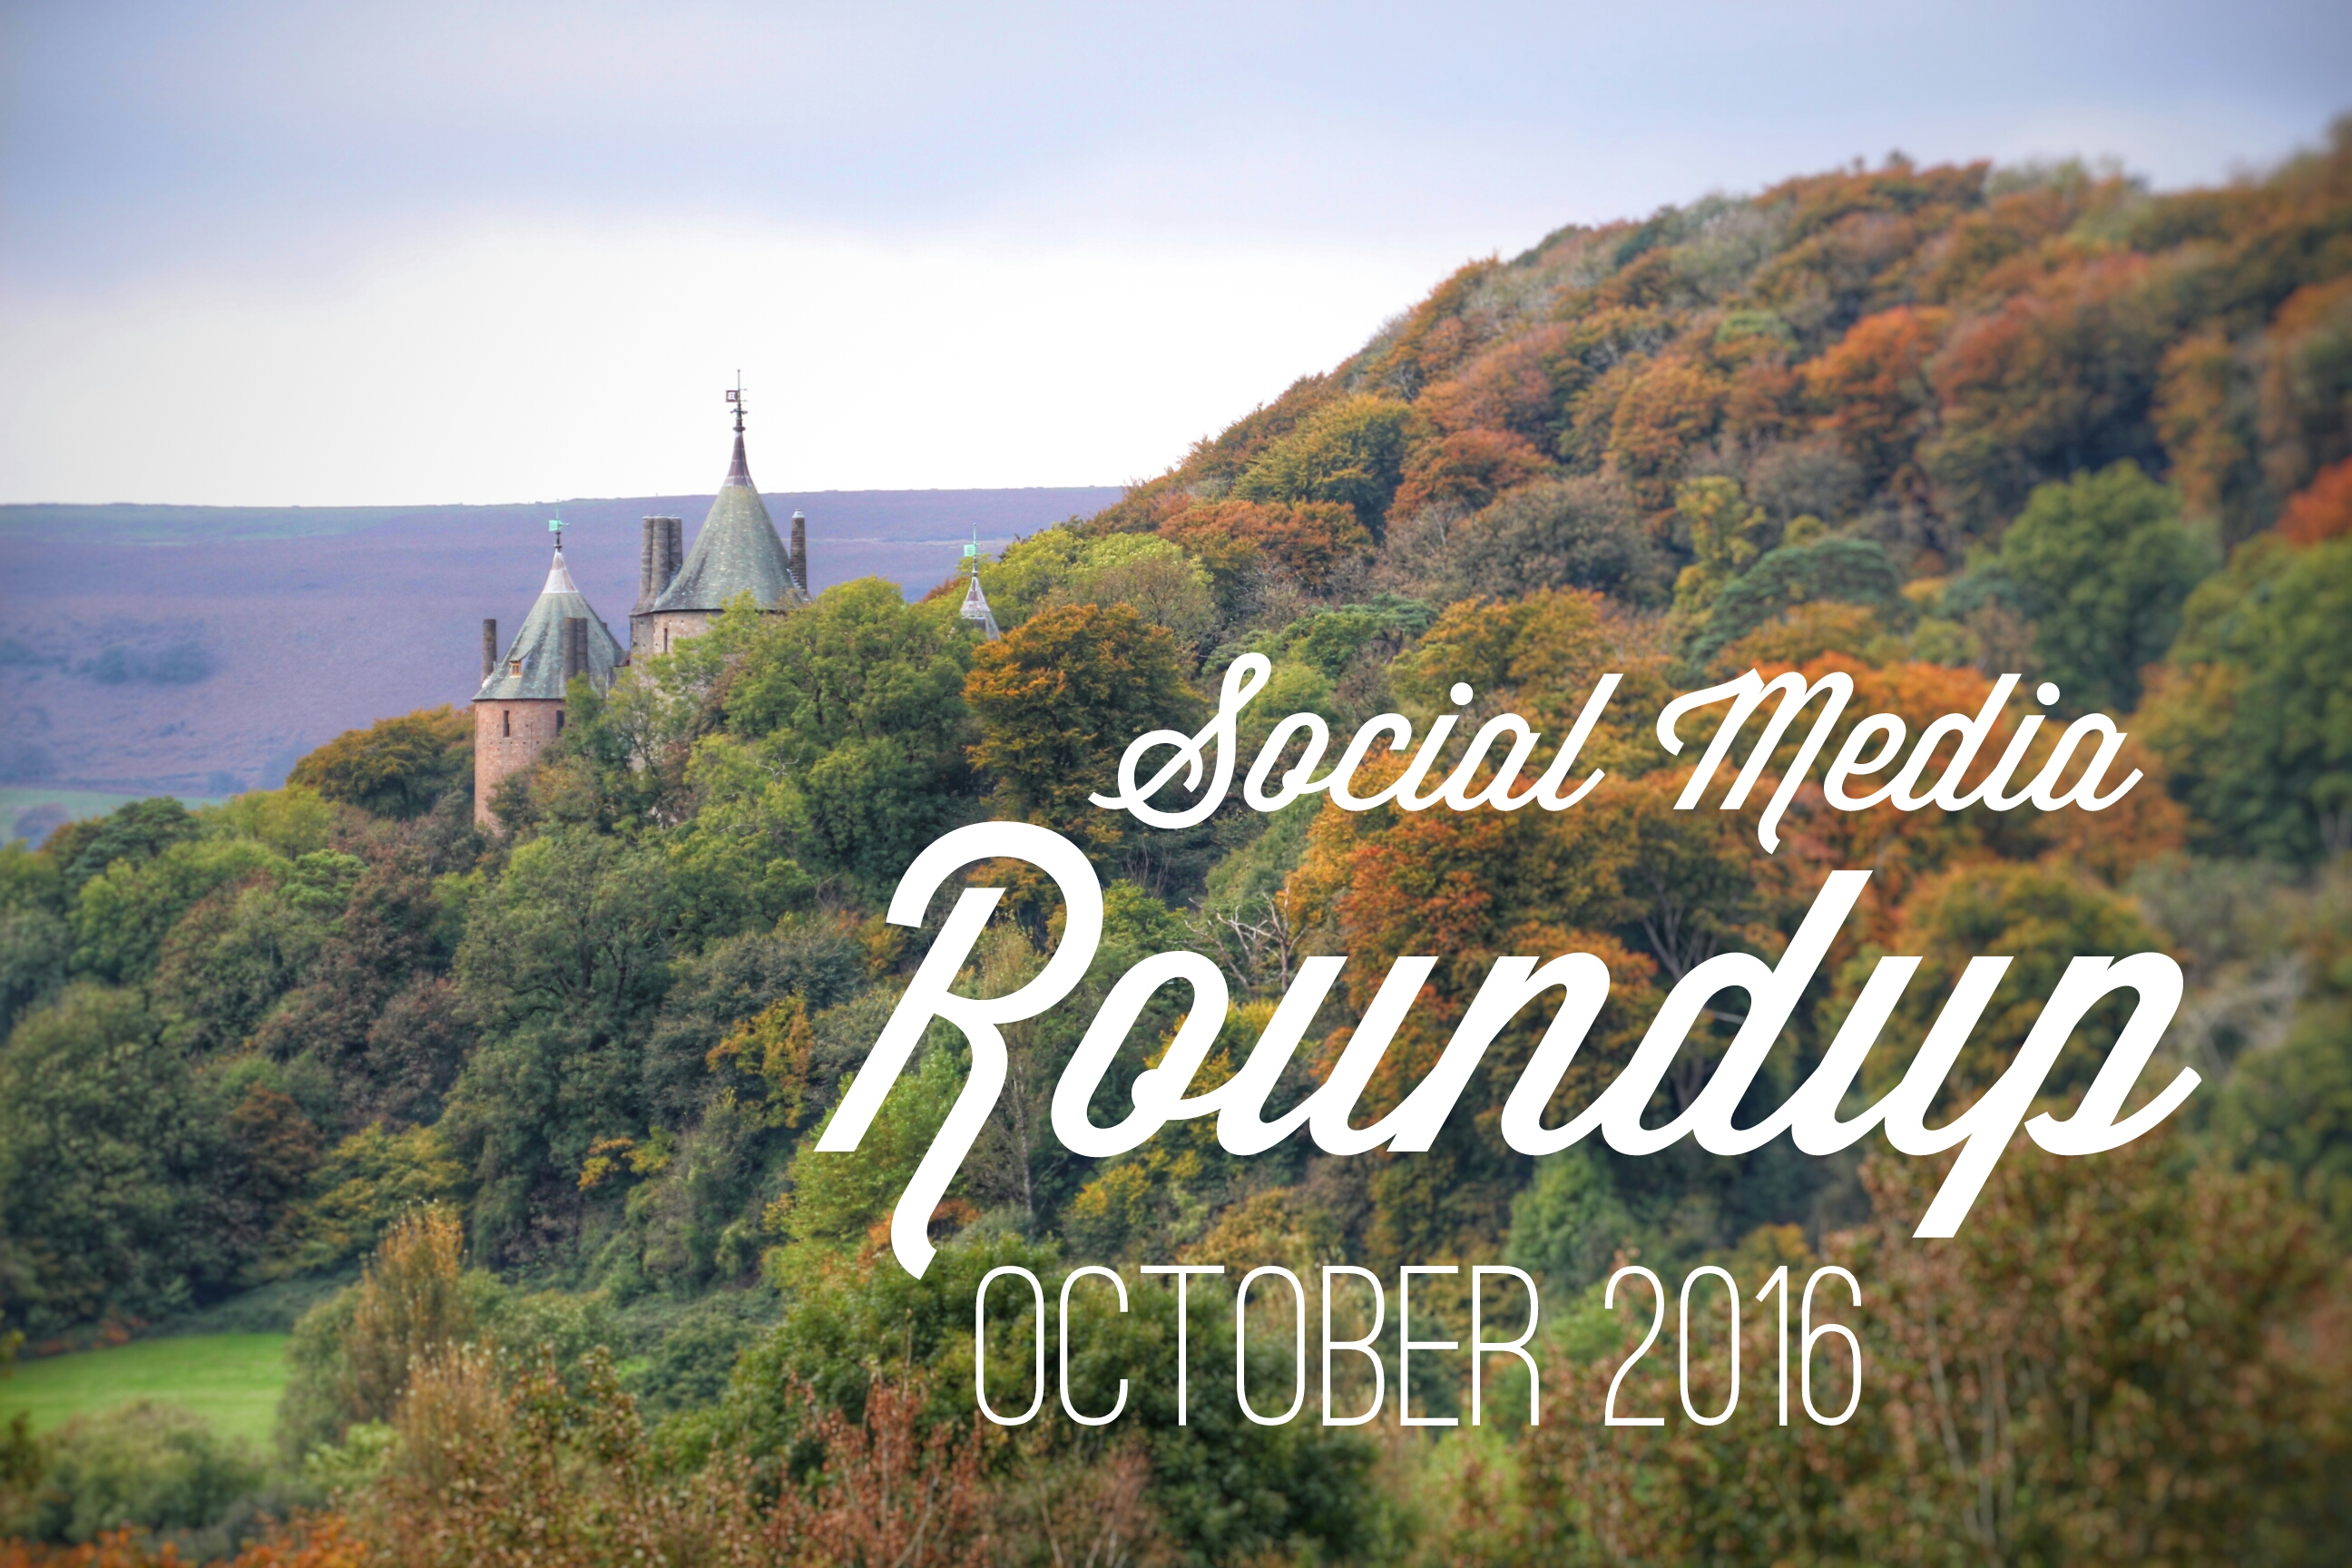 Social Media Roundup October 2016 header